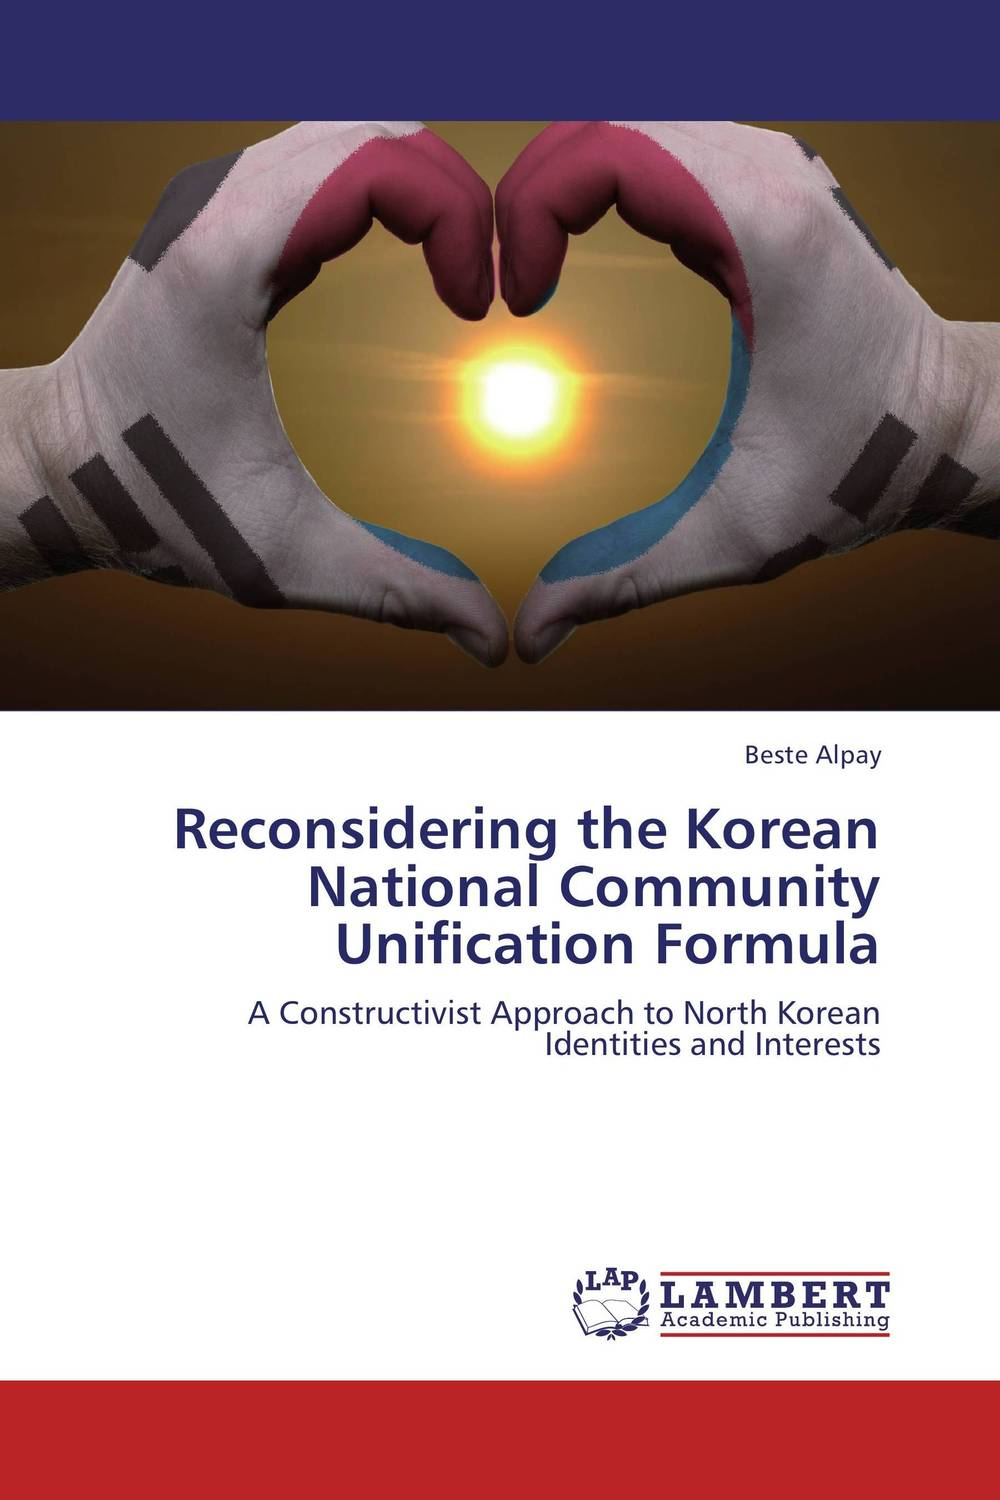 Reconsidering the Korean National Community Unification Formula salahuddin khan relationship among qualifications experience gender